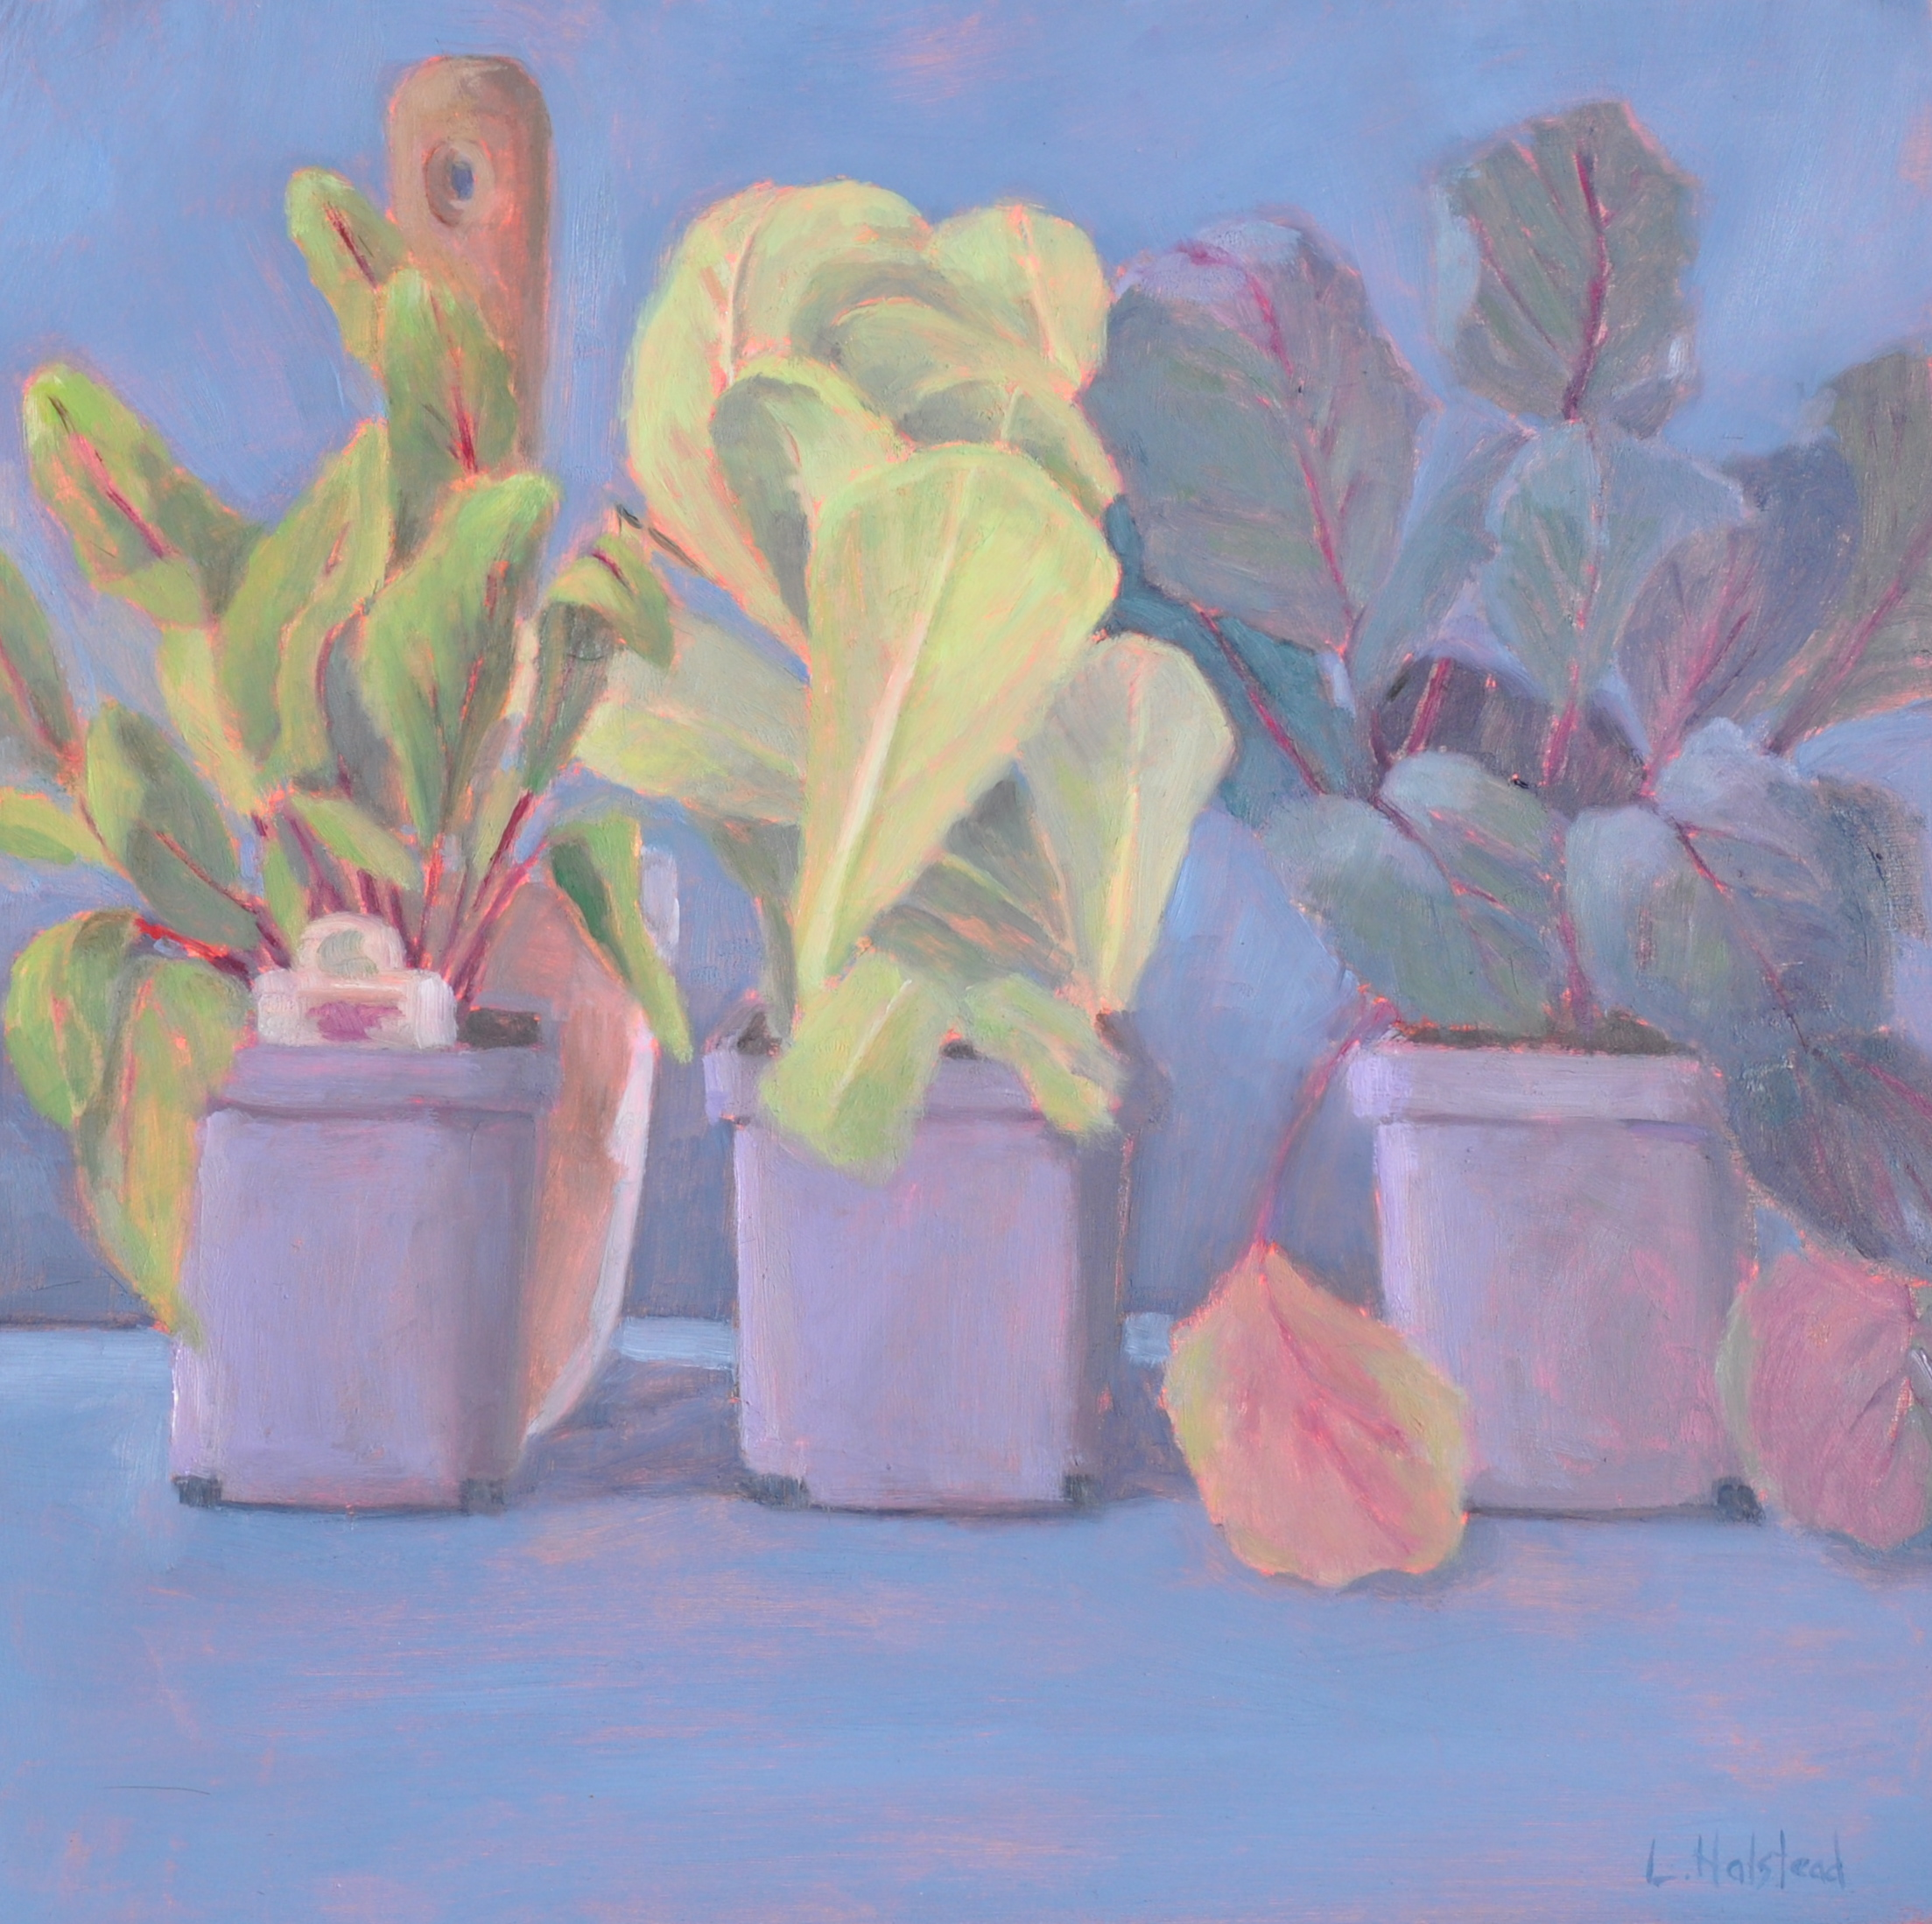 Spring Greens, Oil on Panel, 12 x 12, private collection